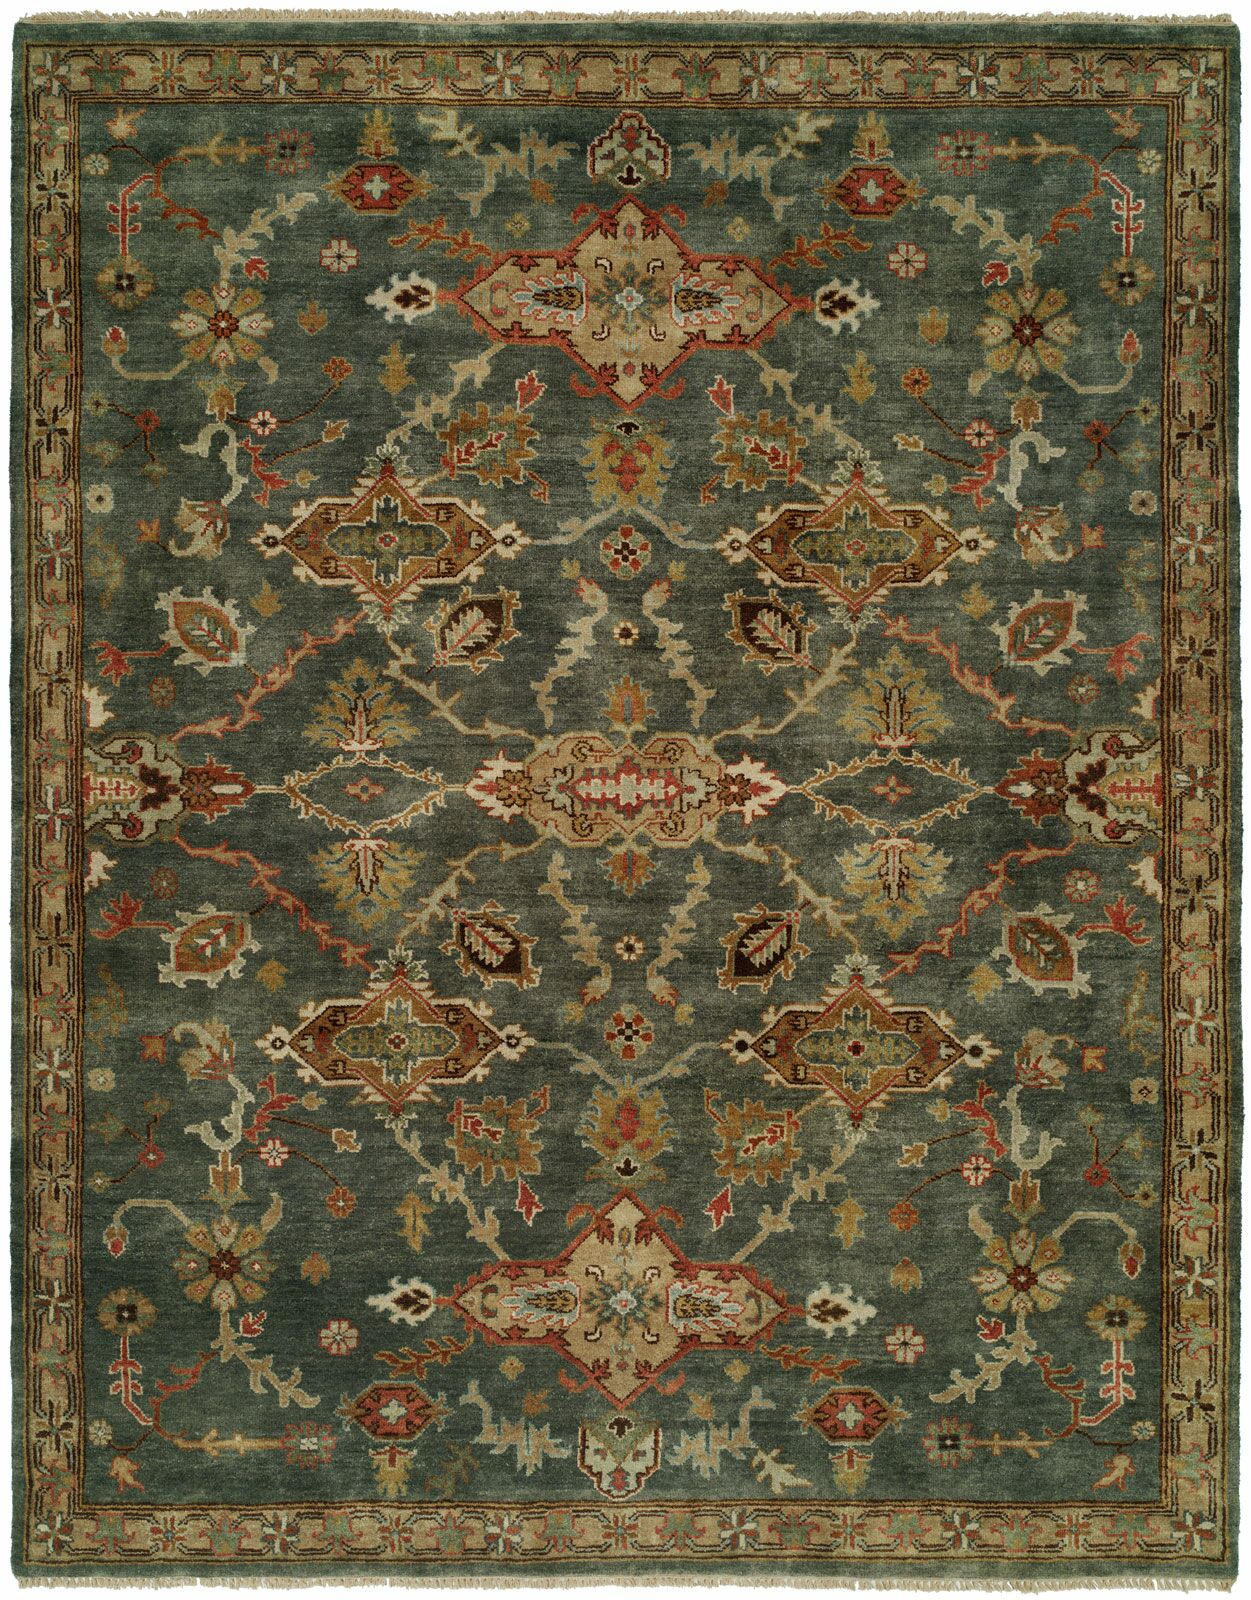 Edna Hand Knotted Wool Blue Area Rug Rug Size: Runner 2'6